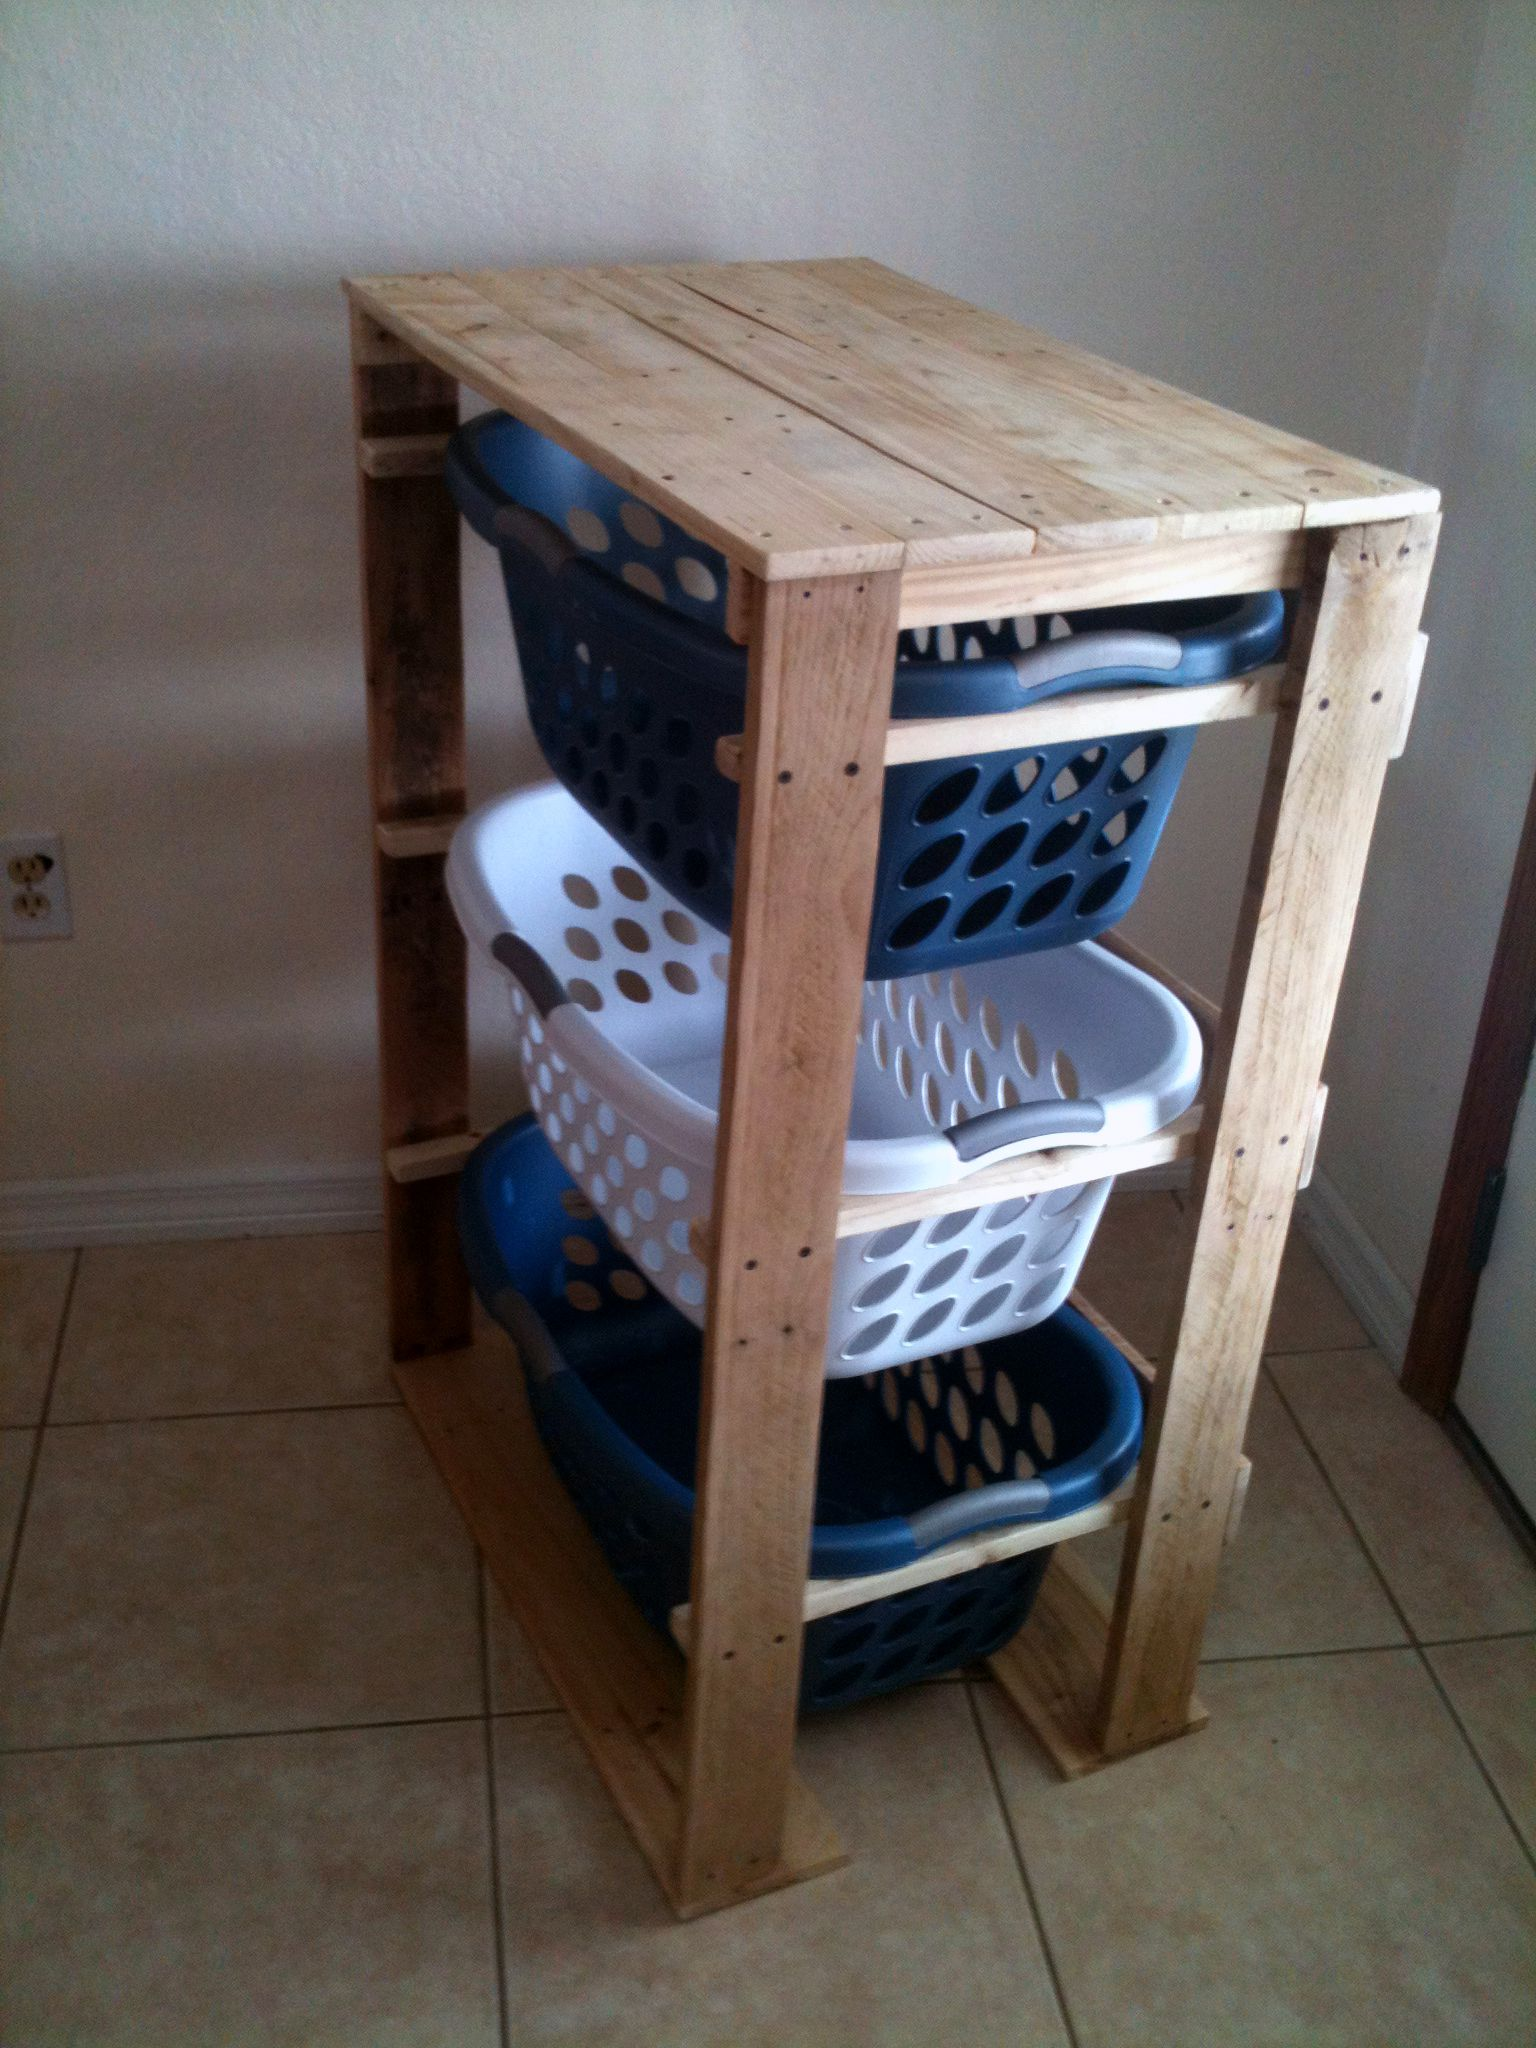 25 ingenious pallet projects and ideas laundry basket dresser furniture plans and easy diy - Diy projects with wooden palletsideas easy to carry out ...